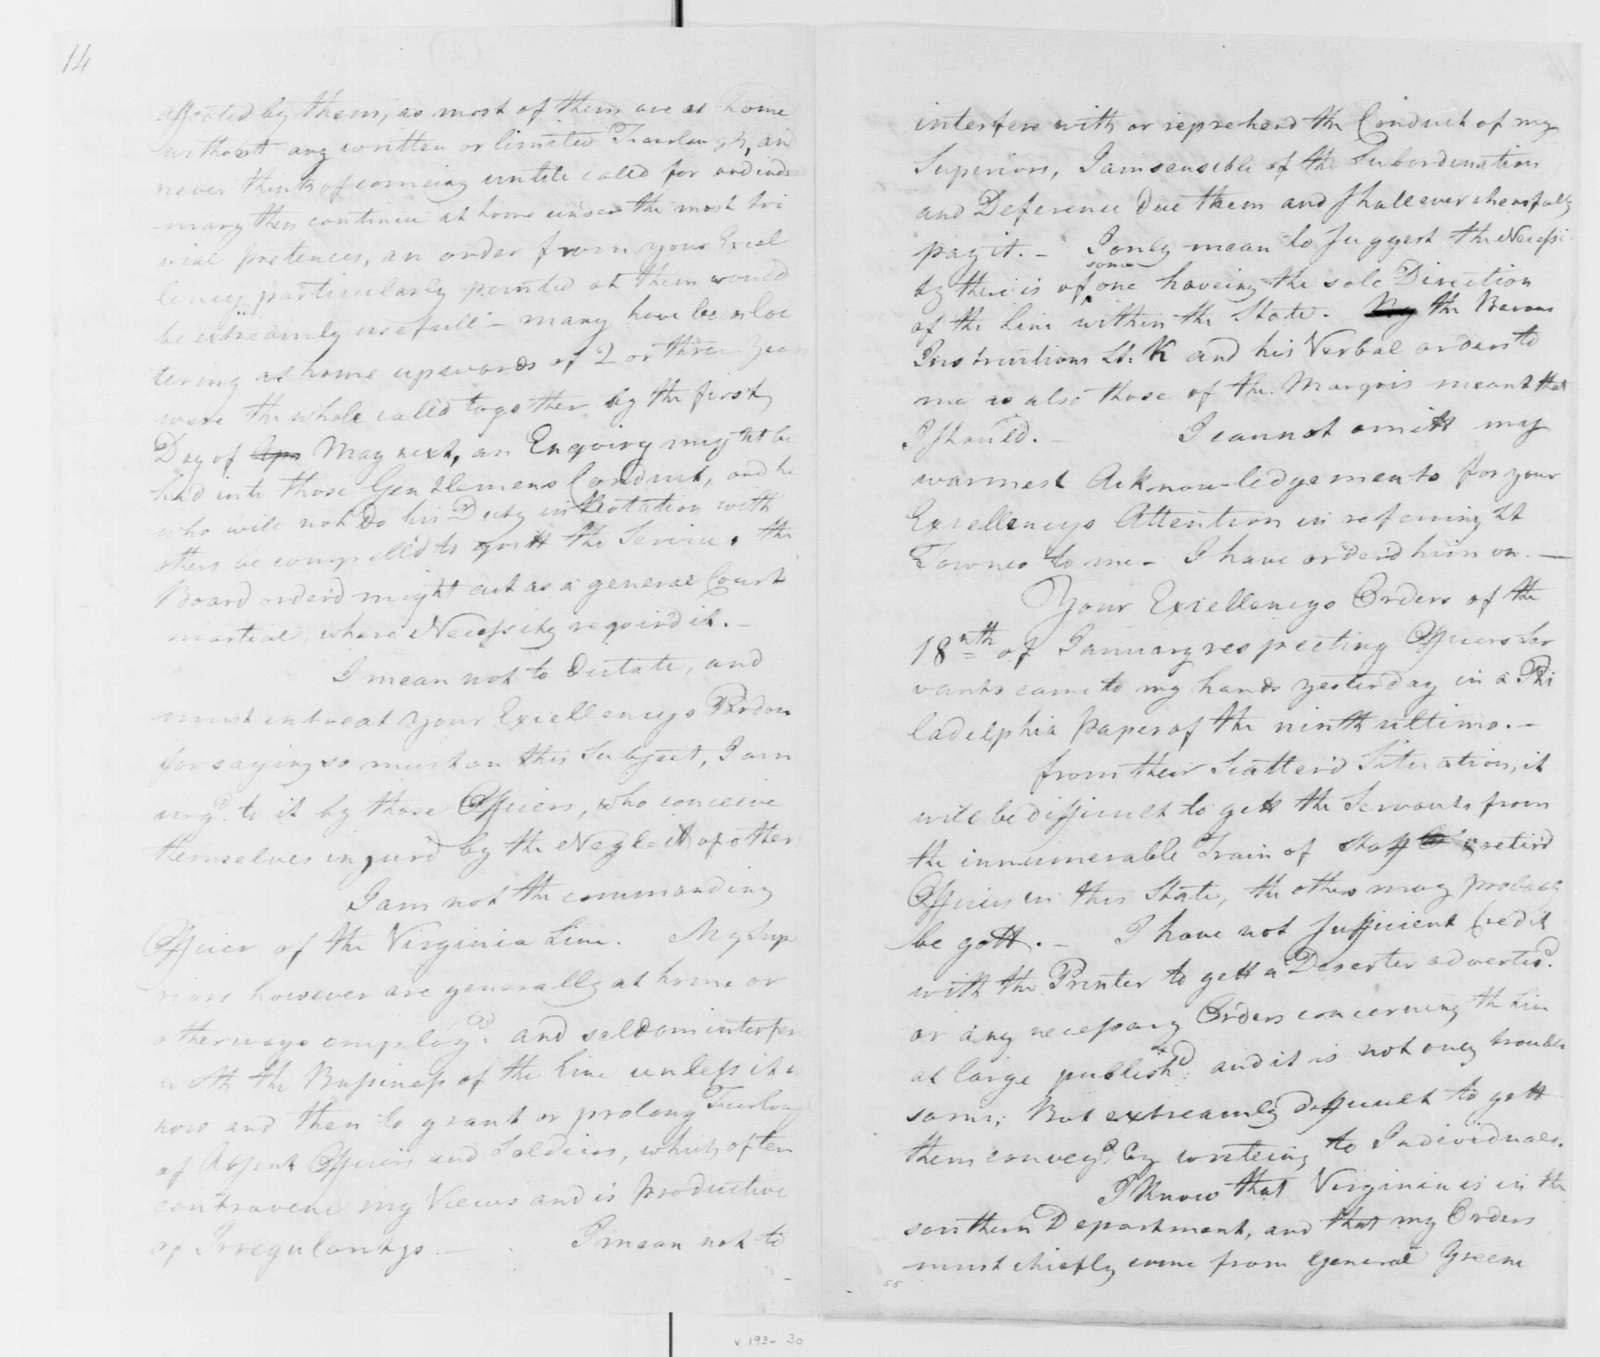 George Washington Papers, Series 4, General Correspondence: Christian Febiger to George Washington, March 14, 1782, with Returns